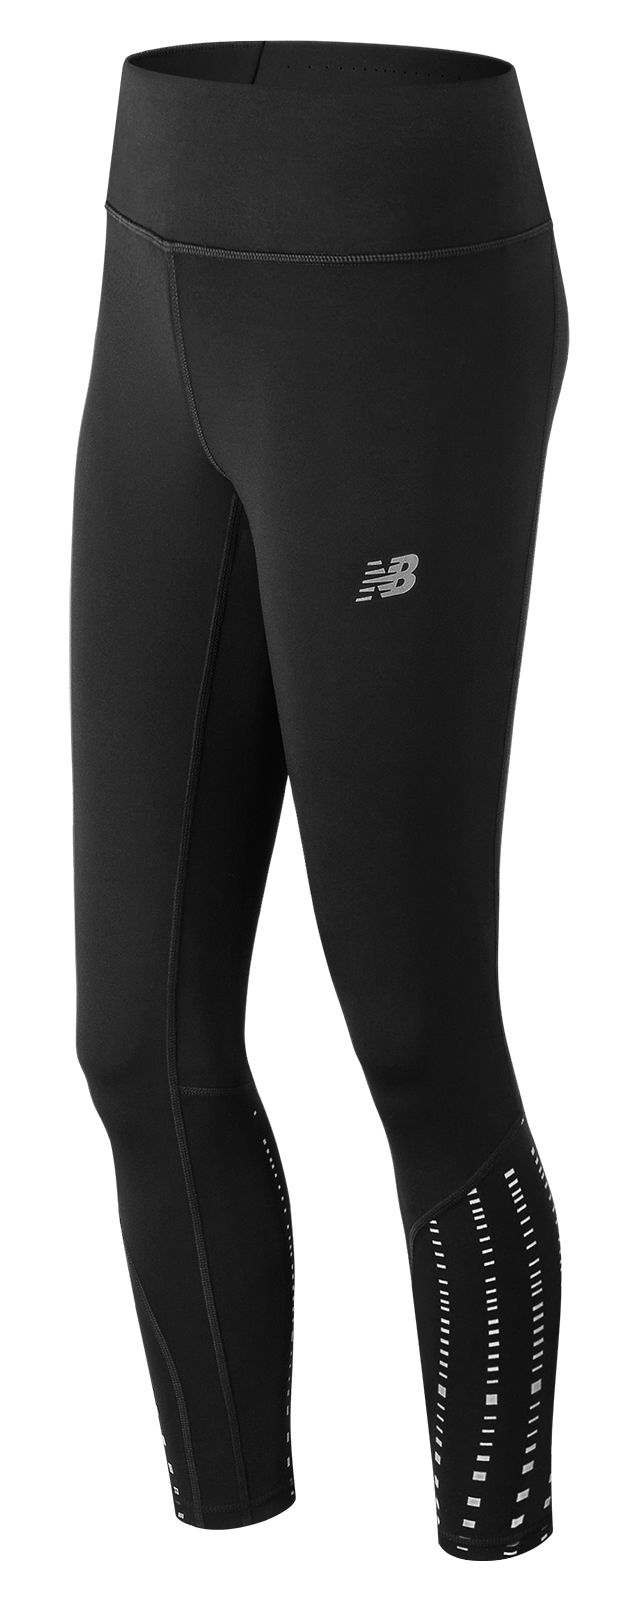 Women's Reflective Tight